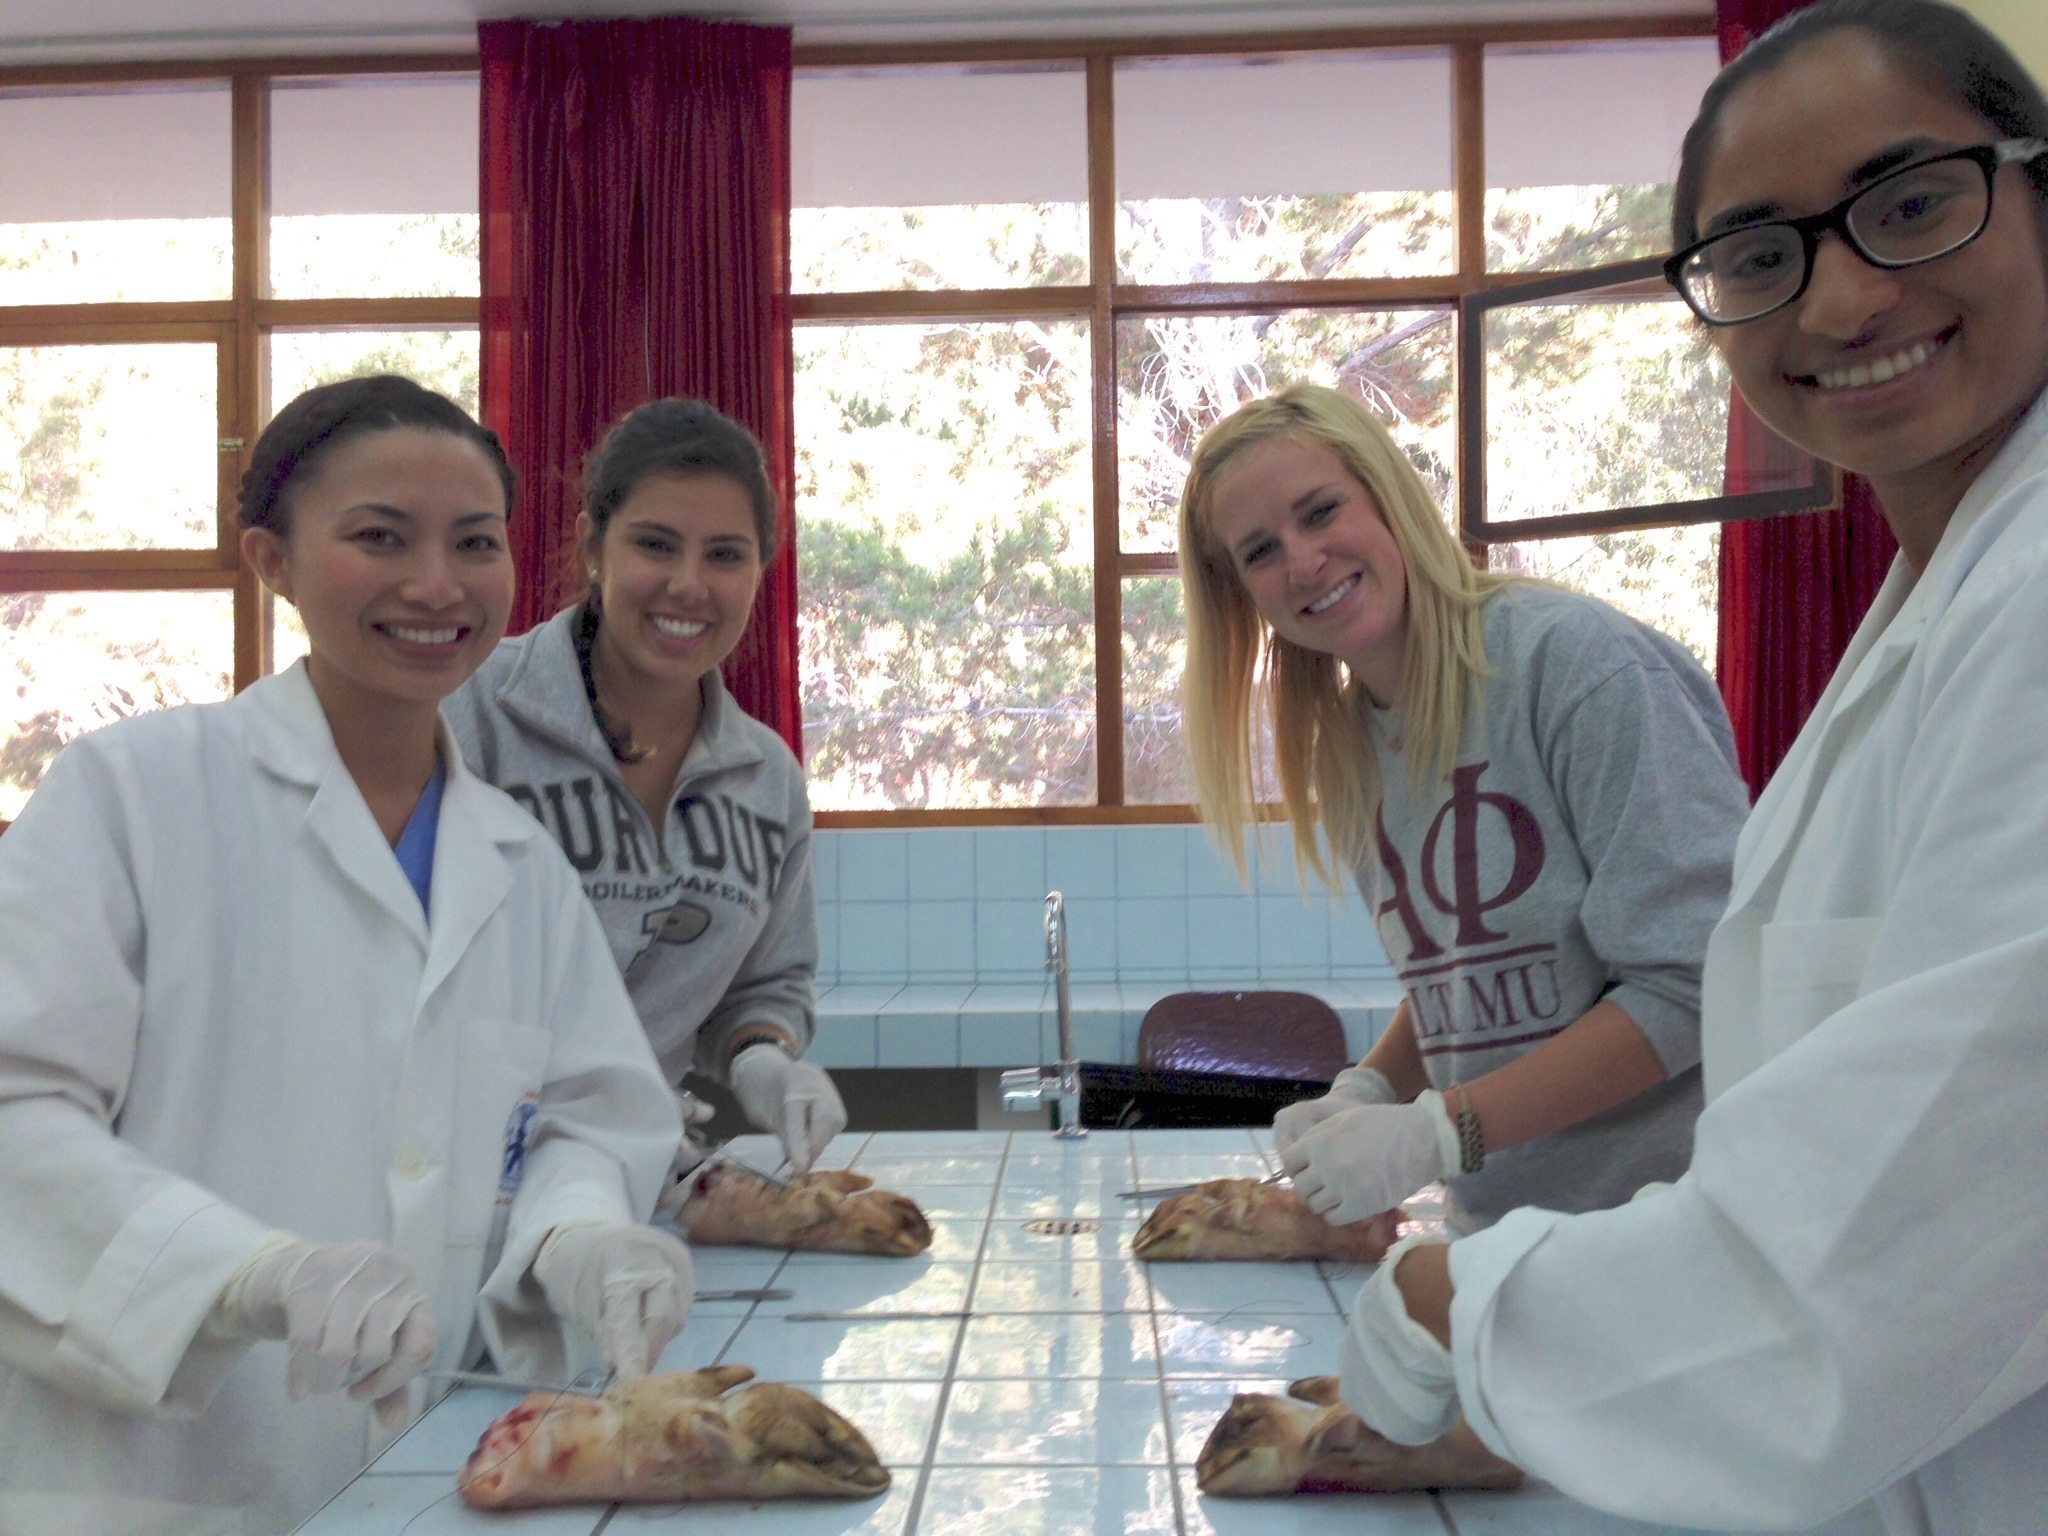 Suturing class is always a big hit for our SIHFers! Check out those pig feet!